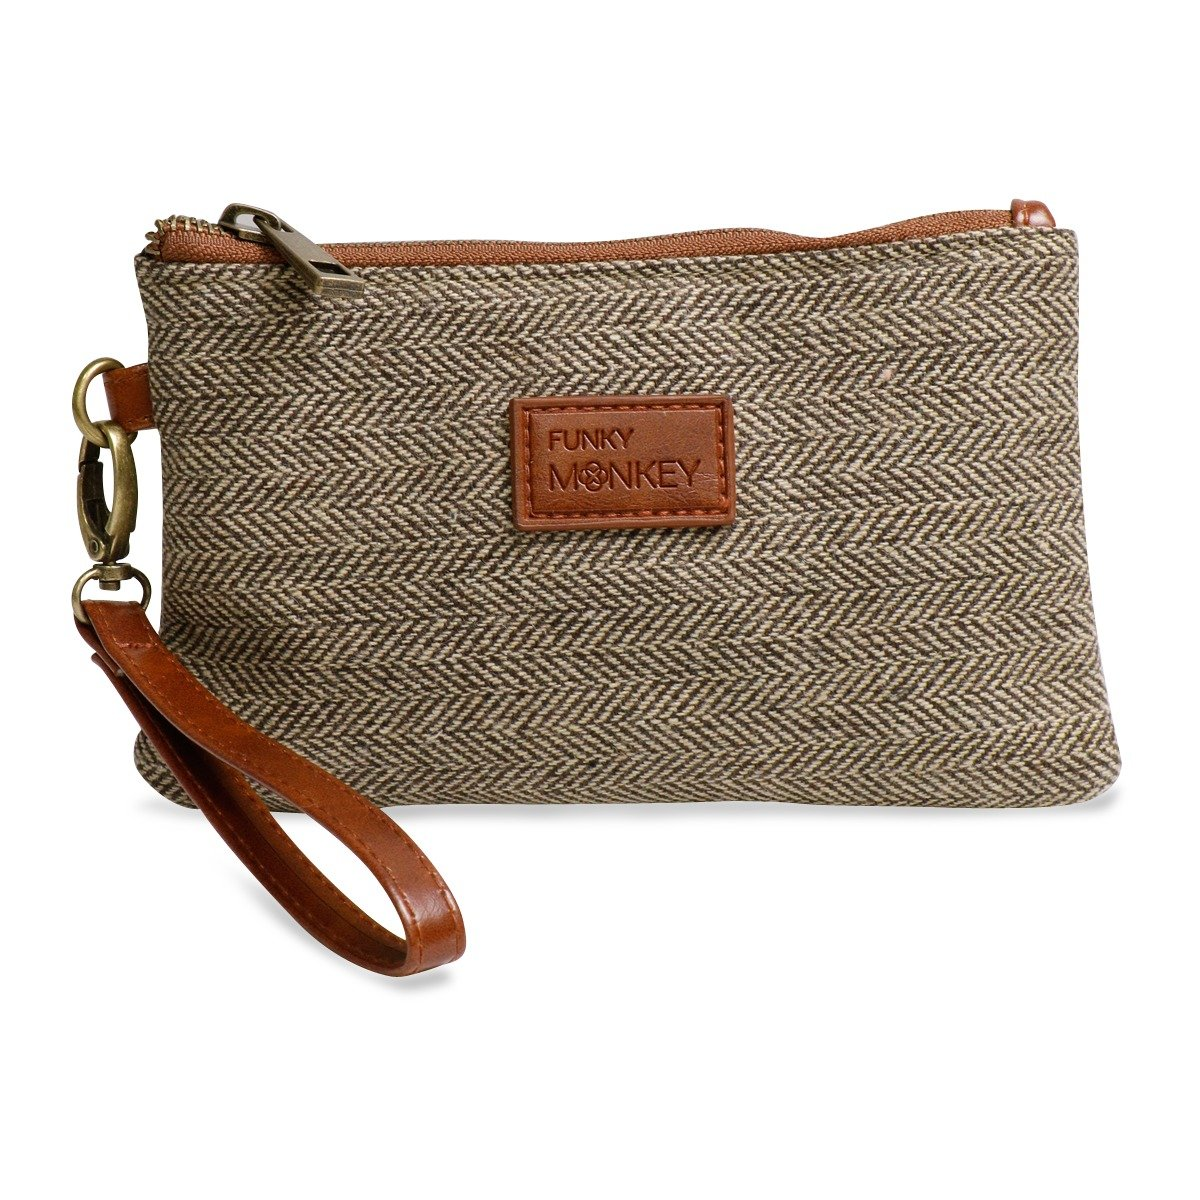 {Sophie Collection} Wristlet Wallet Clutch Bag - Phone Purse Handbag - Small, Medium, Large Size - Brown & Beige Herringbone Style - Funky Monkey Fashion (Medium)